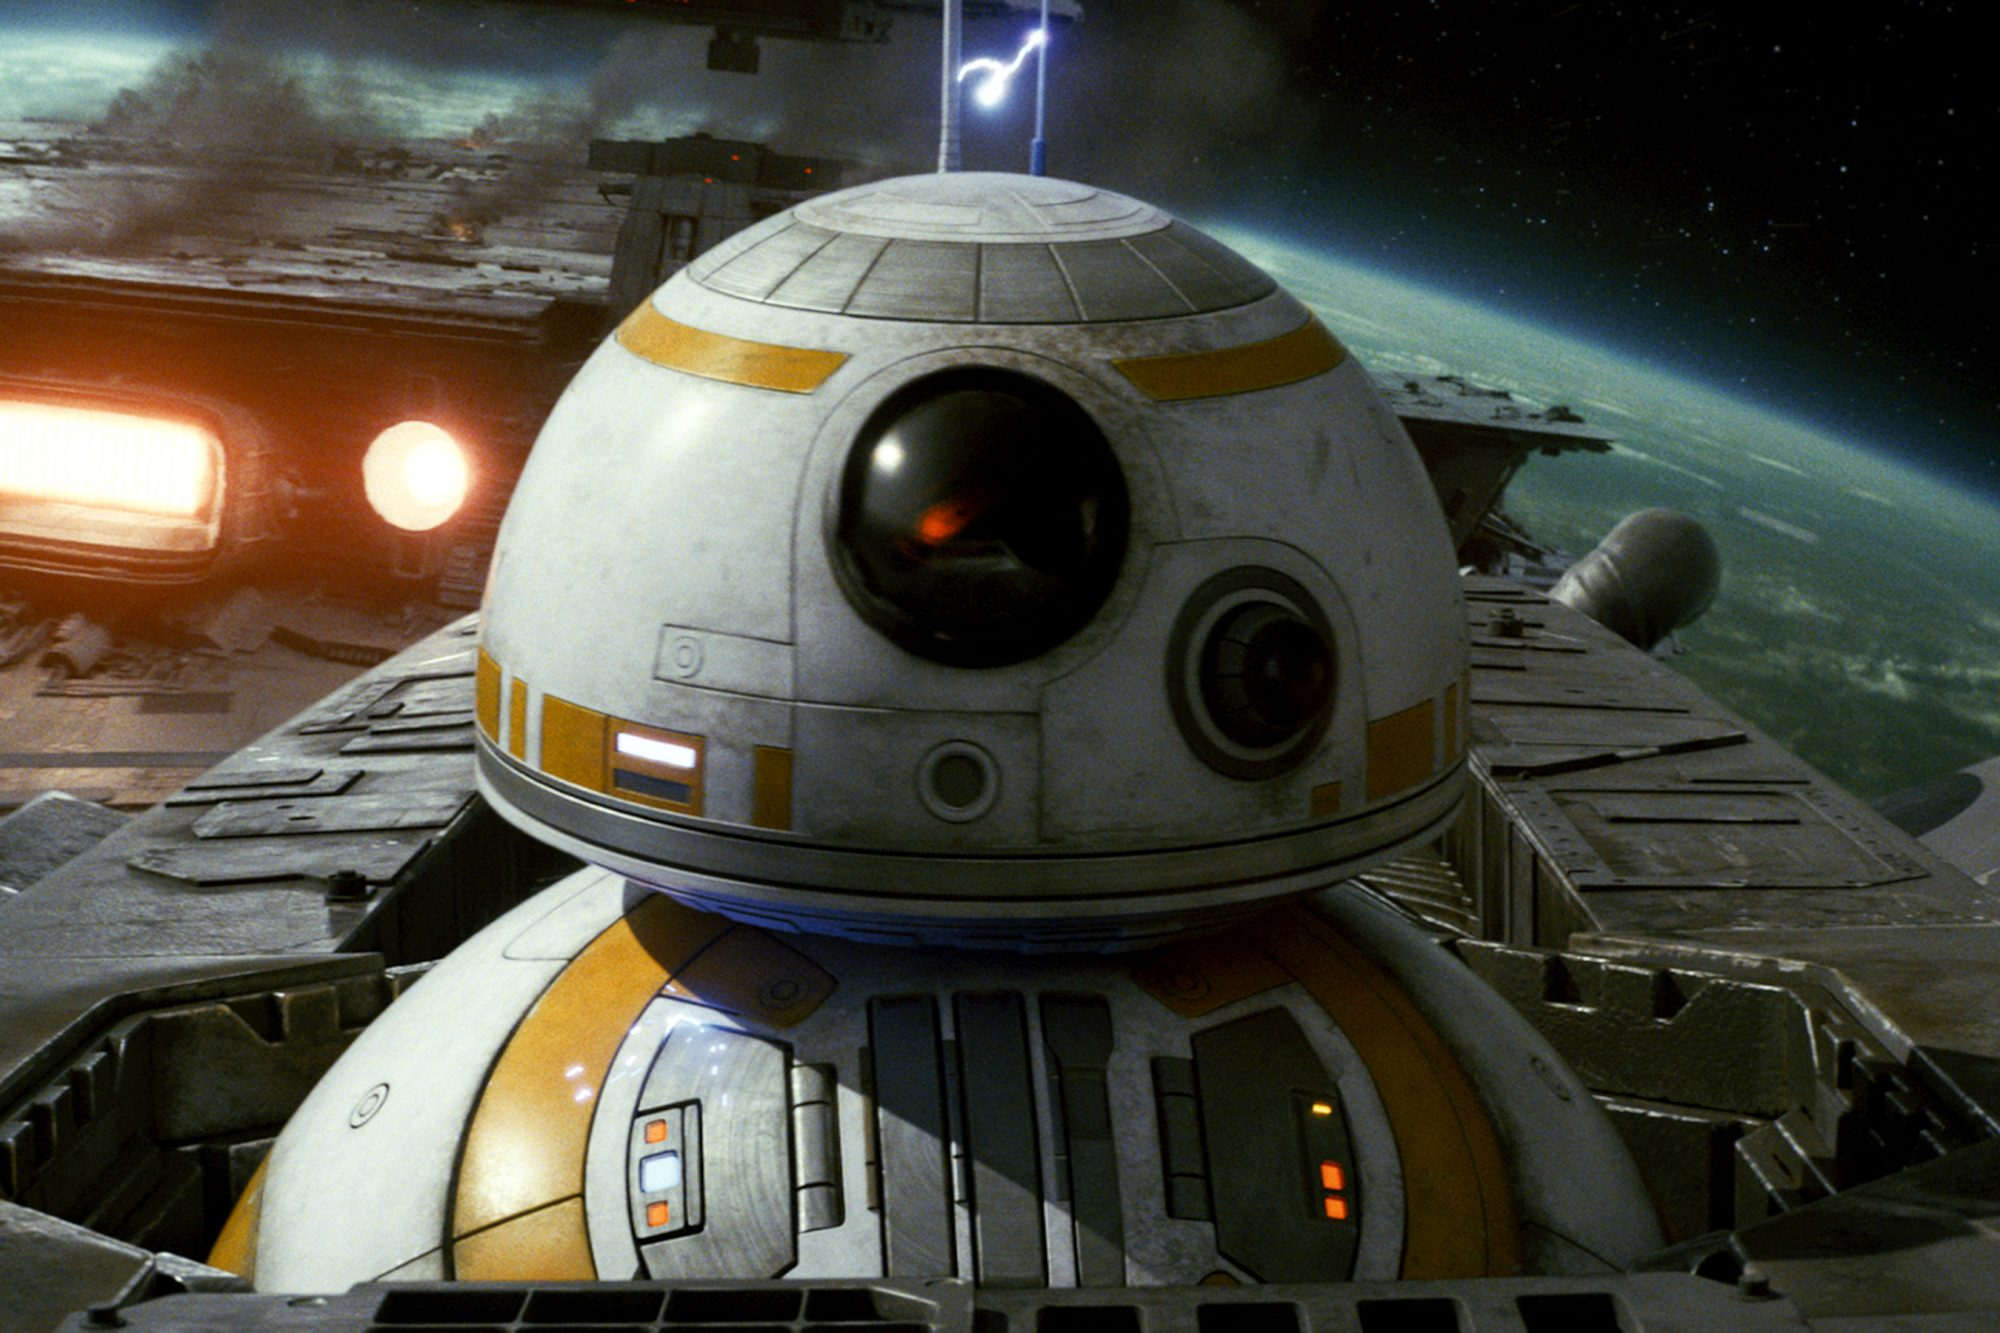 2. BB-8 (The Force Awakens)